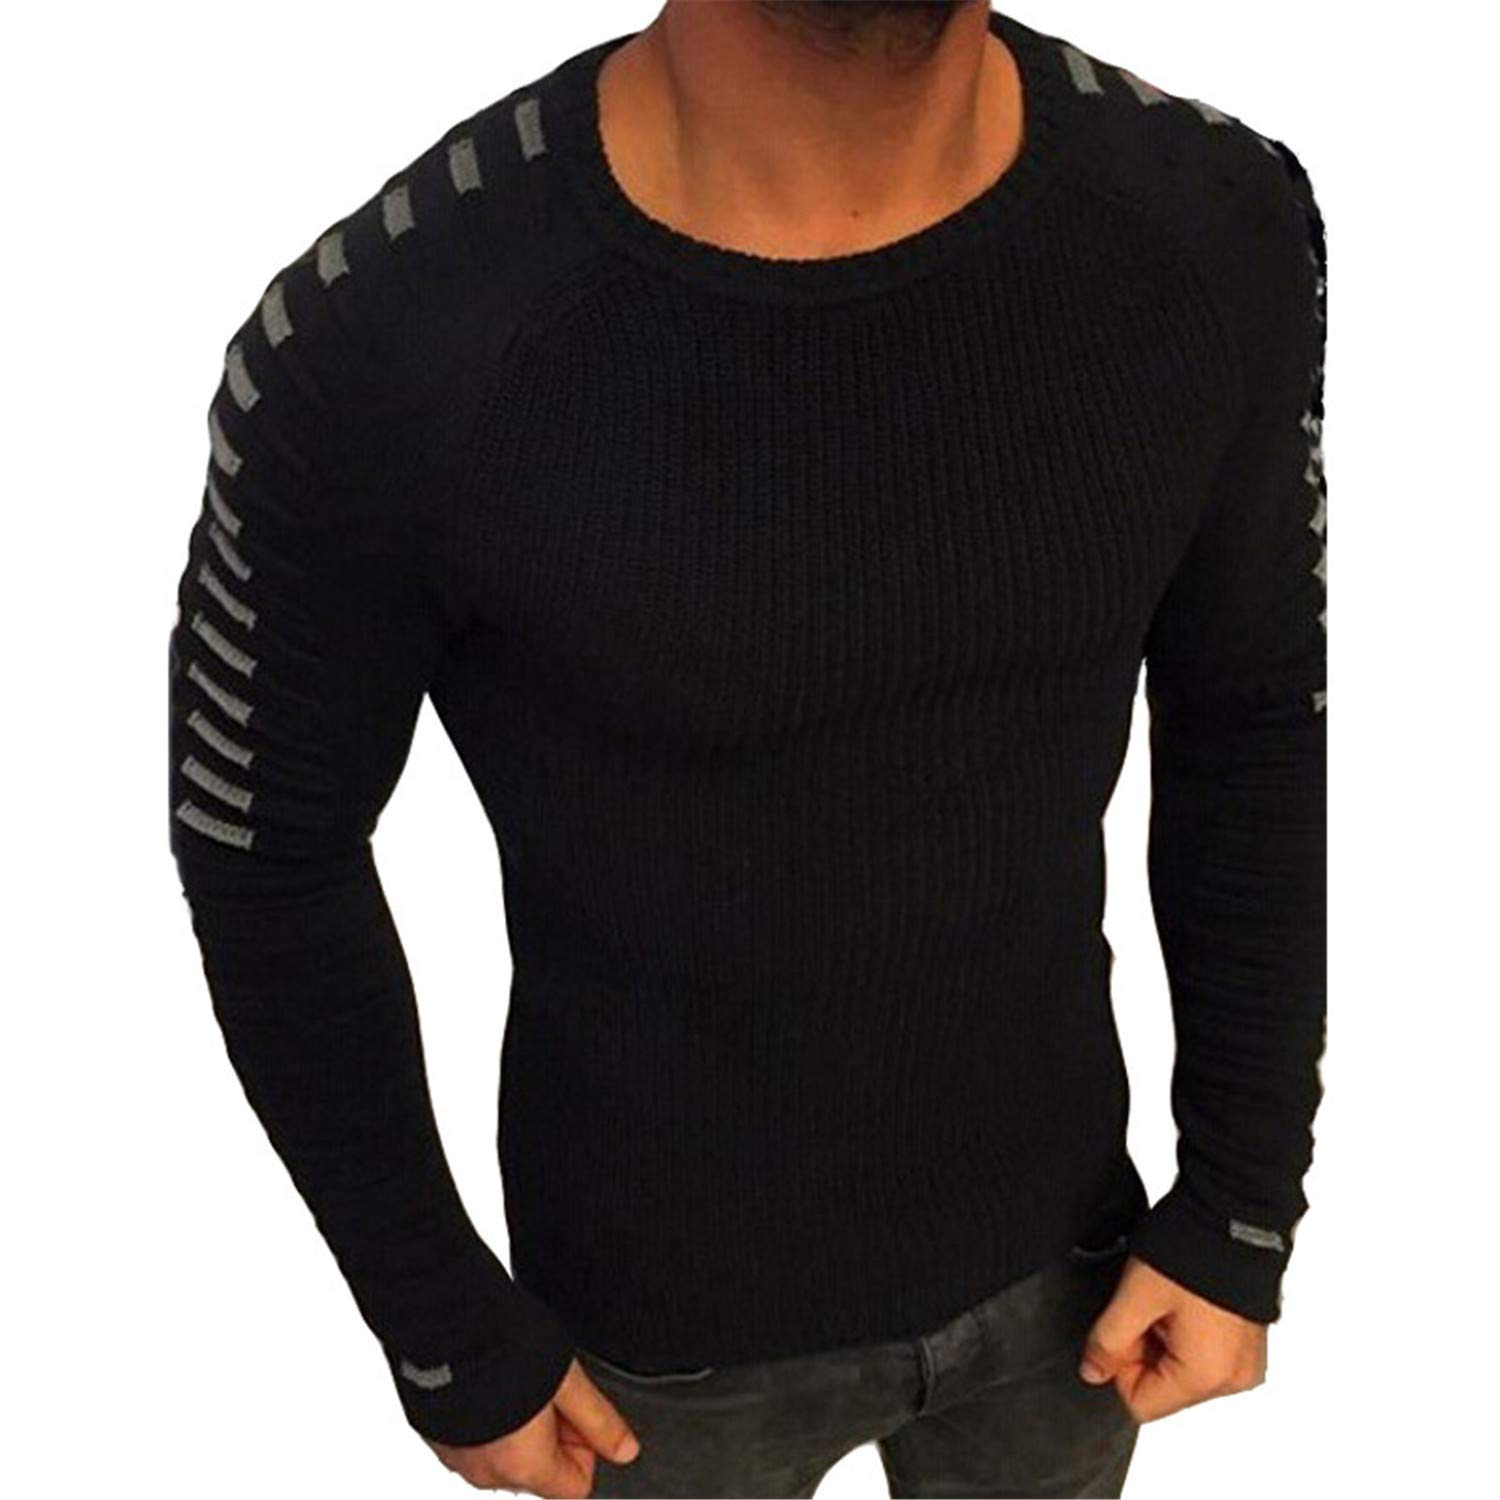 Nerefy Sweater Men Pullover Men Long Sleeve O-Neck Patchwork Knitted Sweaters